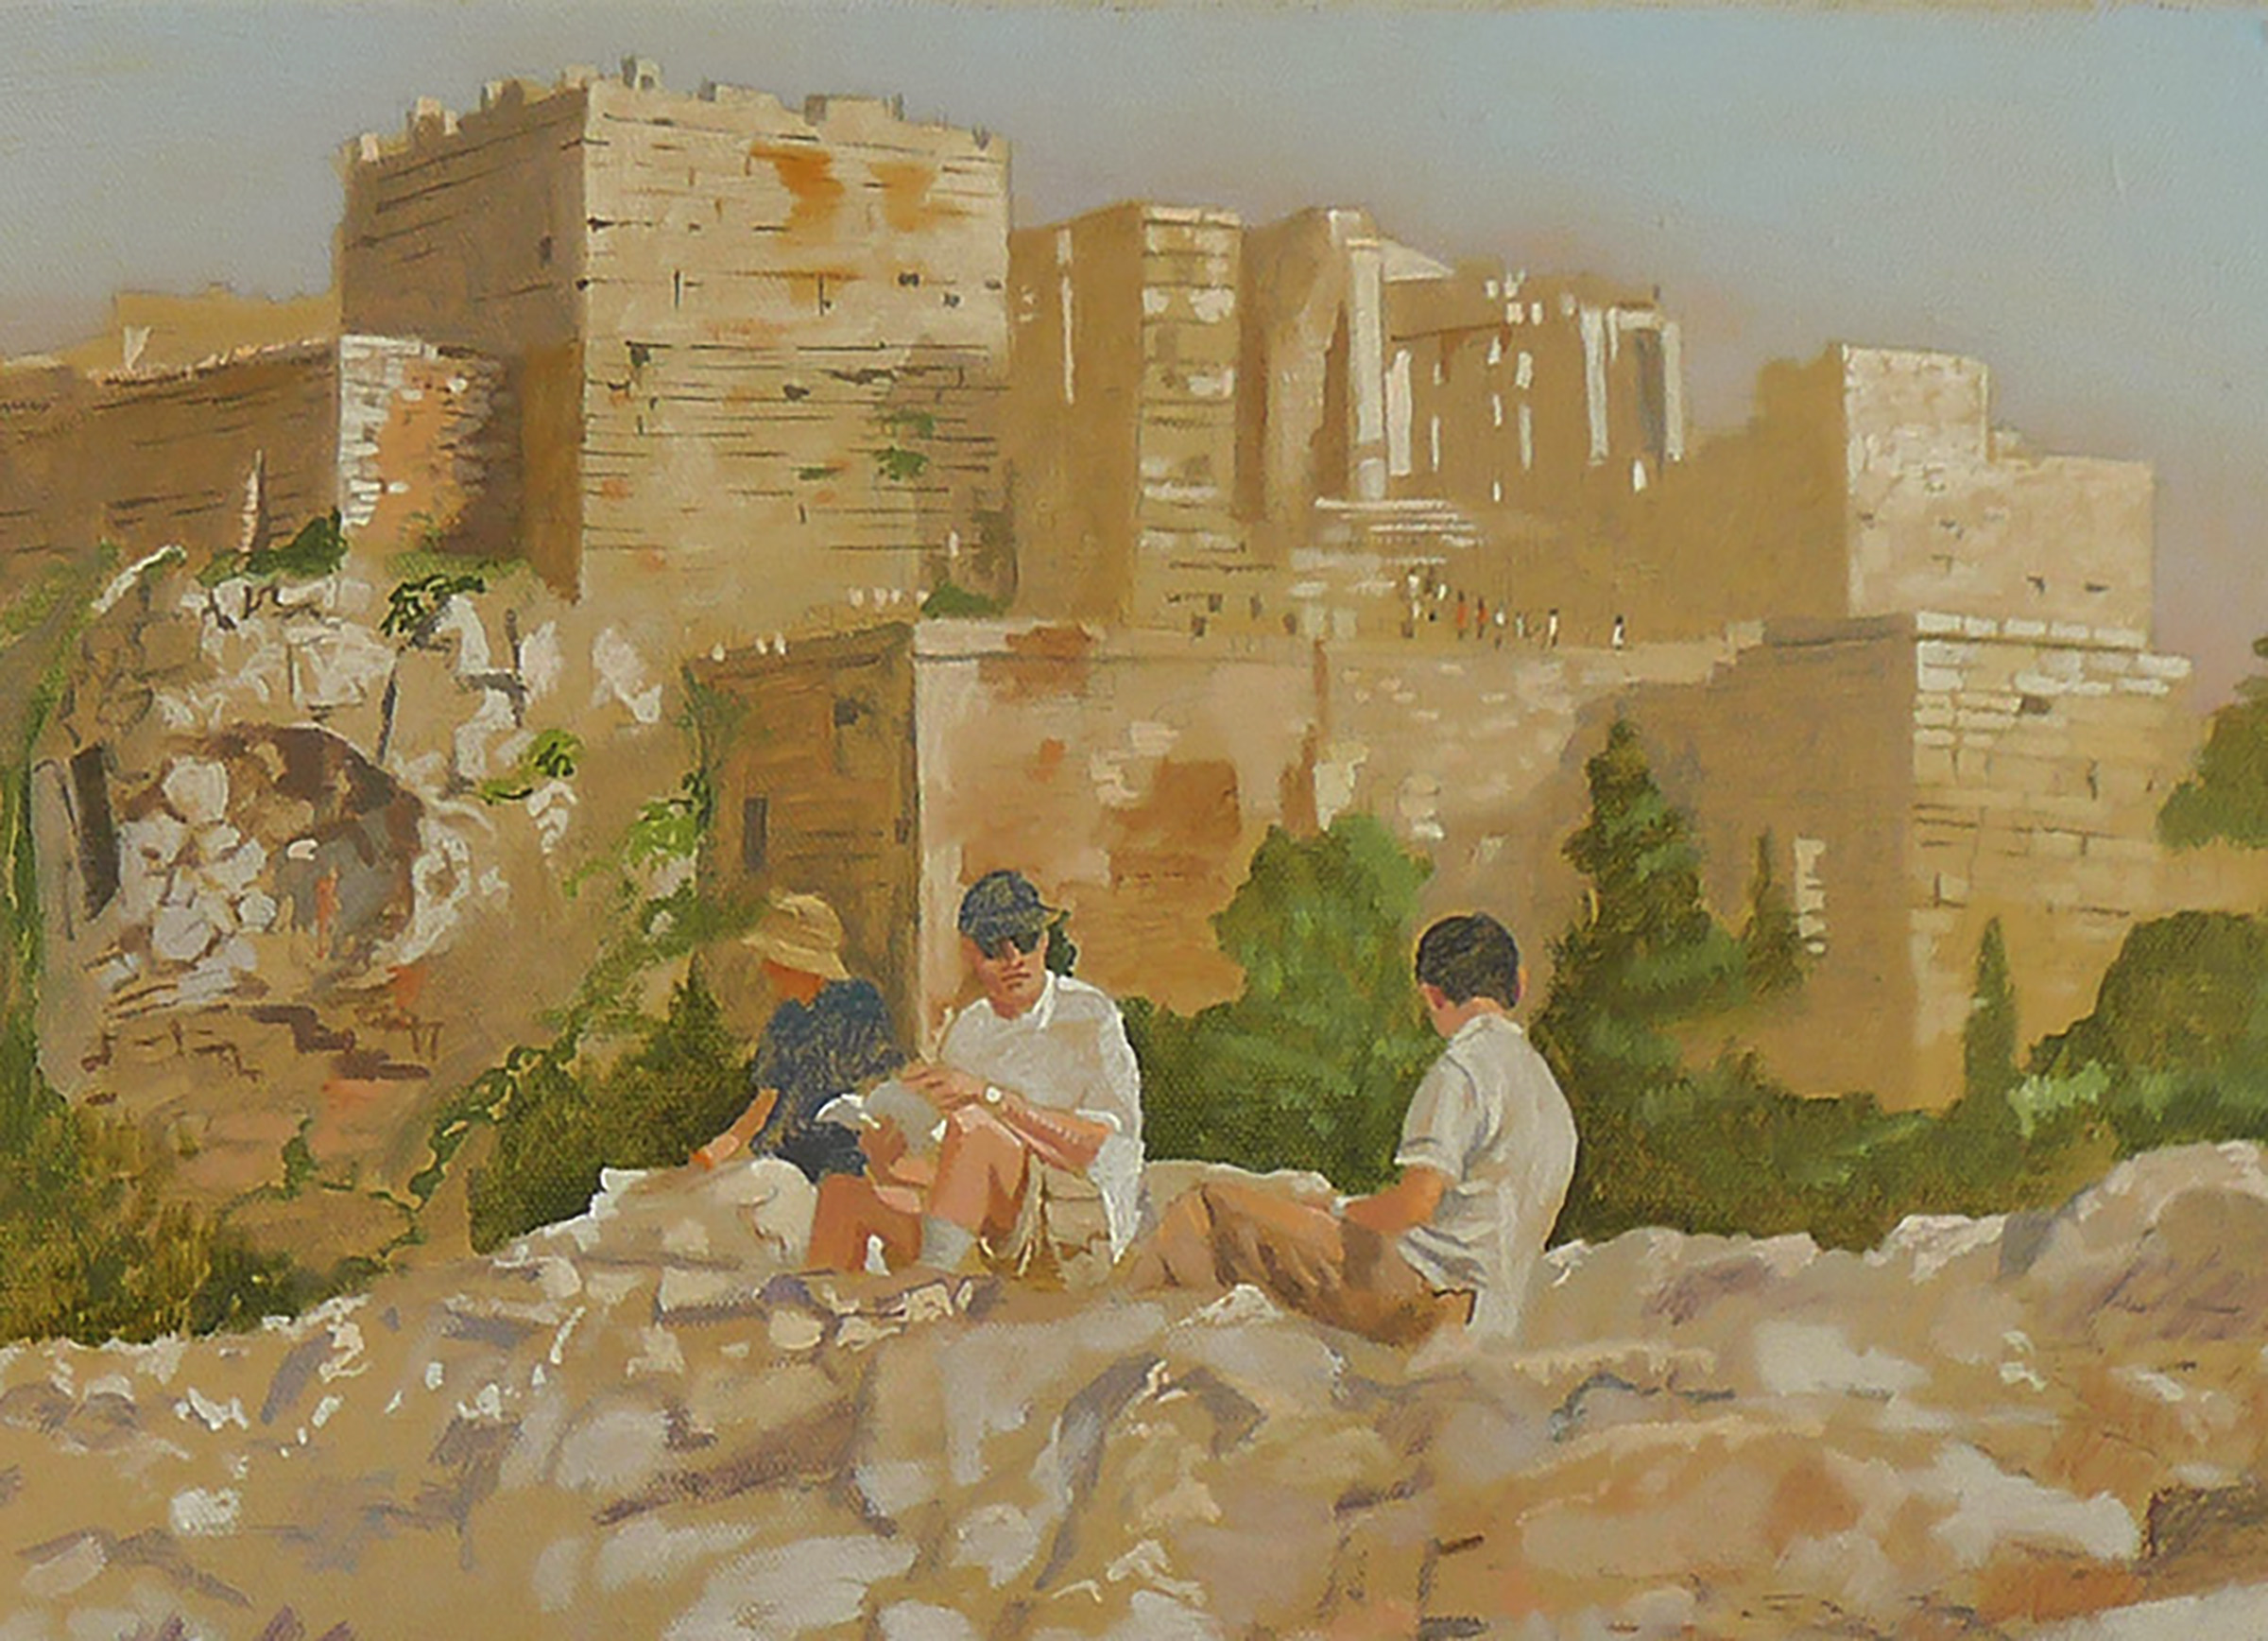 DETAIL  figures at the acropolis, oil on linen, 2006